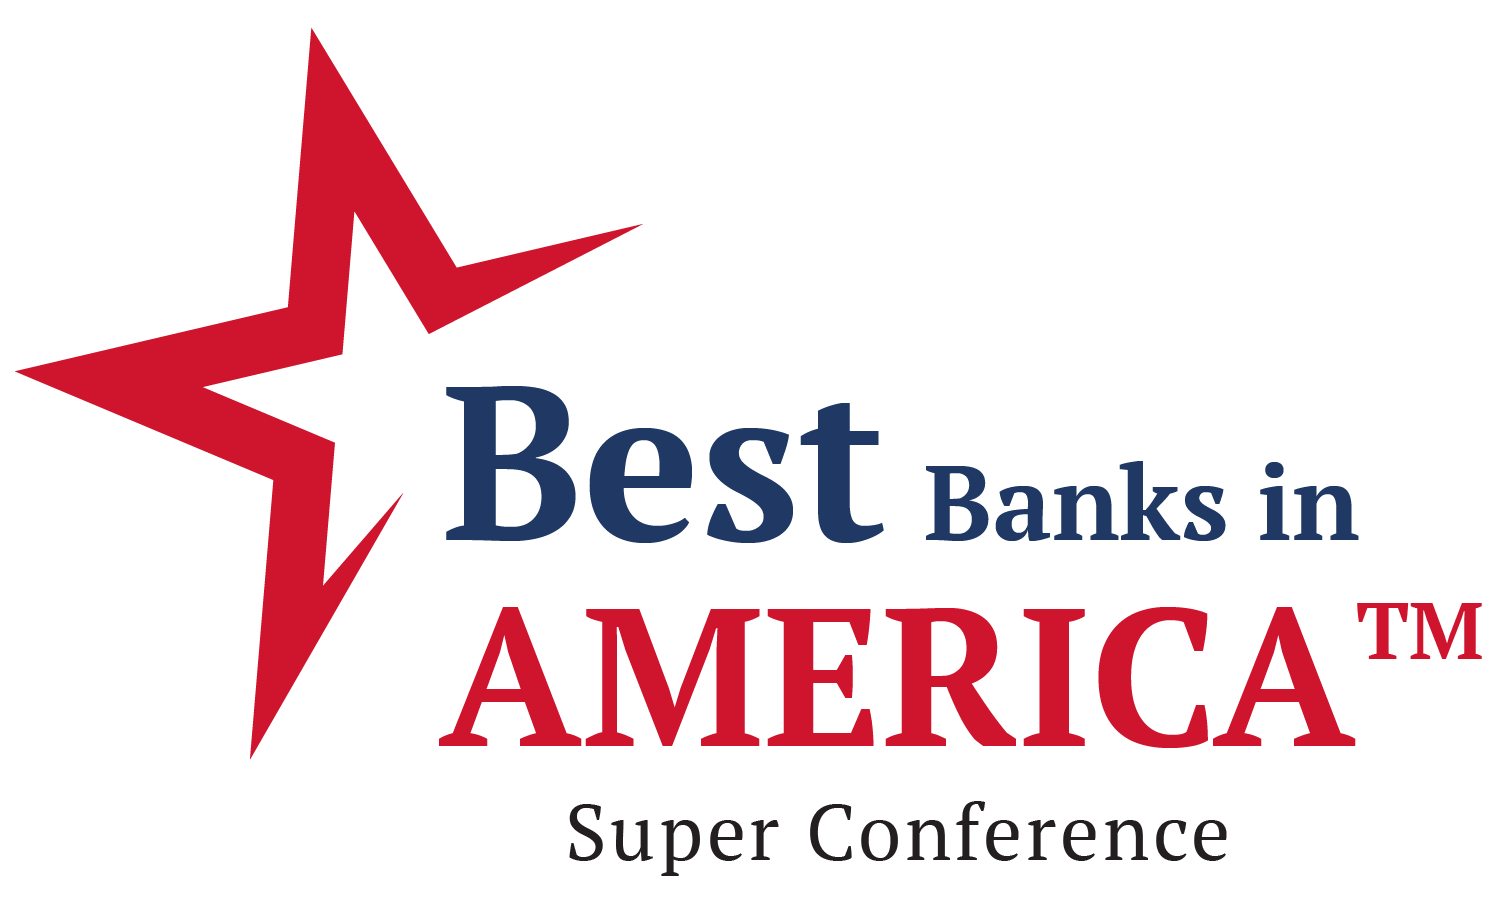 Best Banks in America Super Conference 01